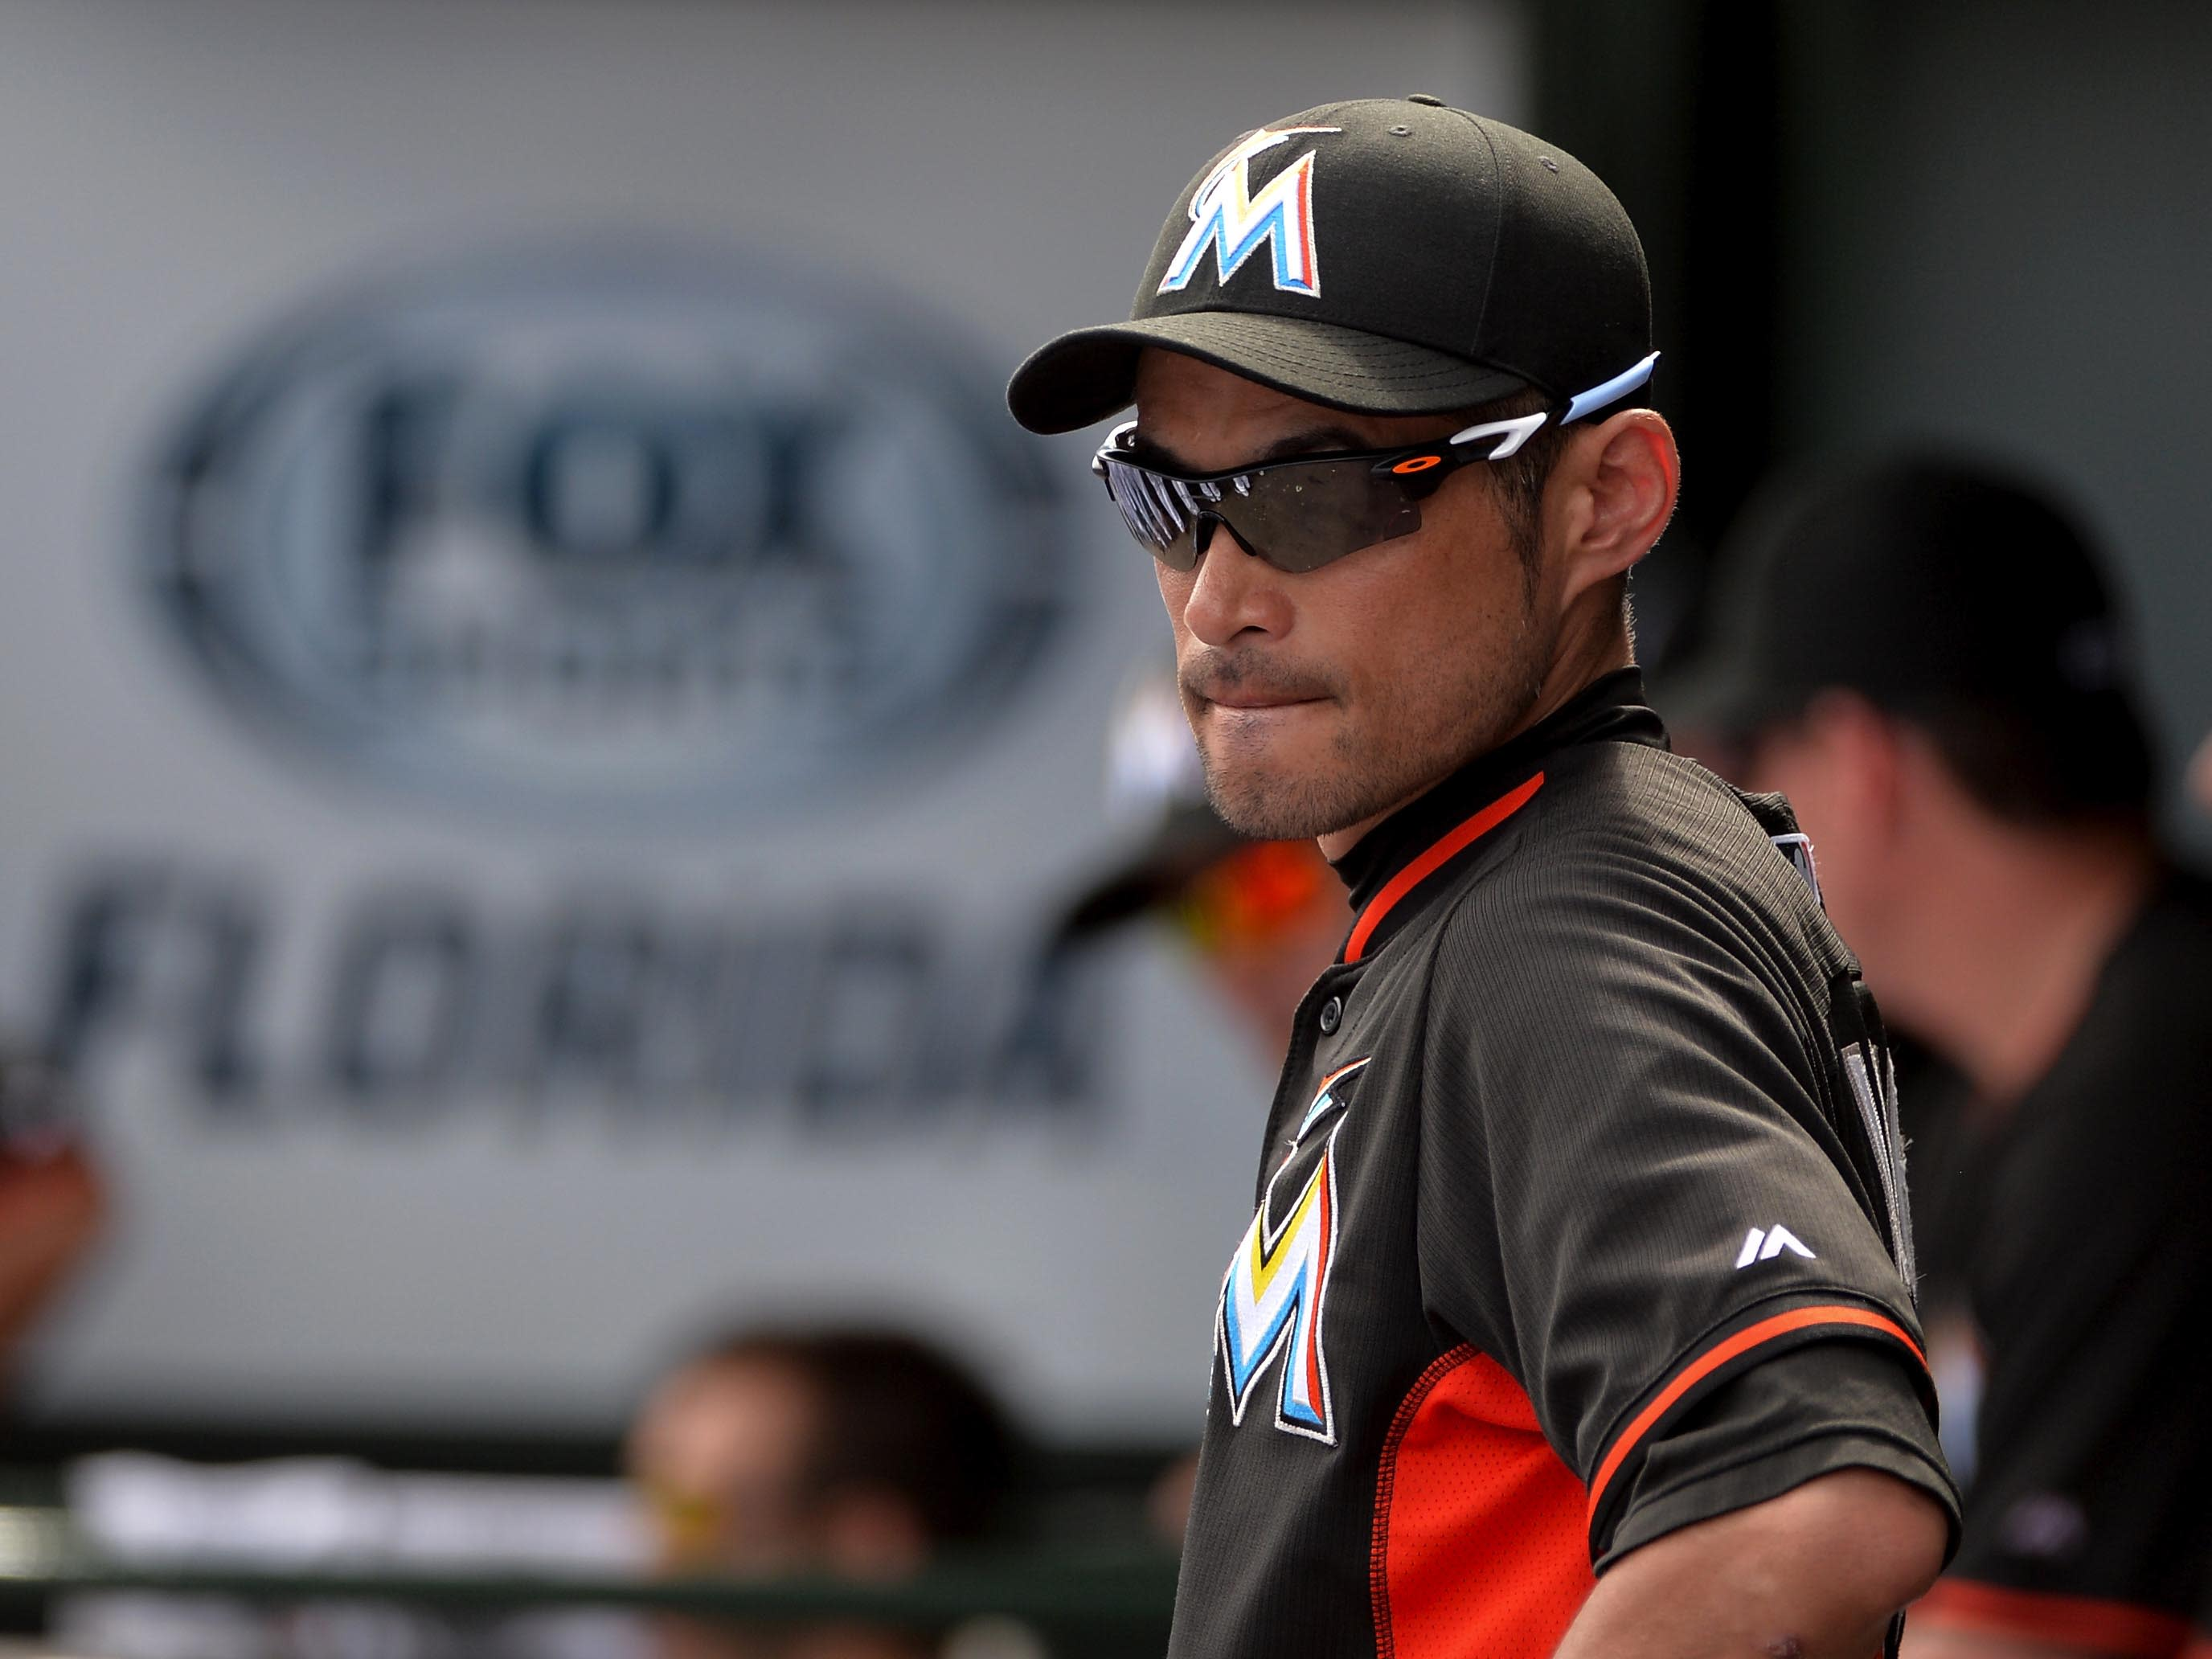 Ichiro compares free agency experience to being 'a puppy at a pet shop'